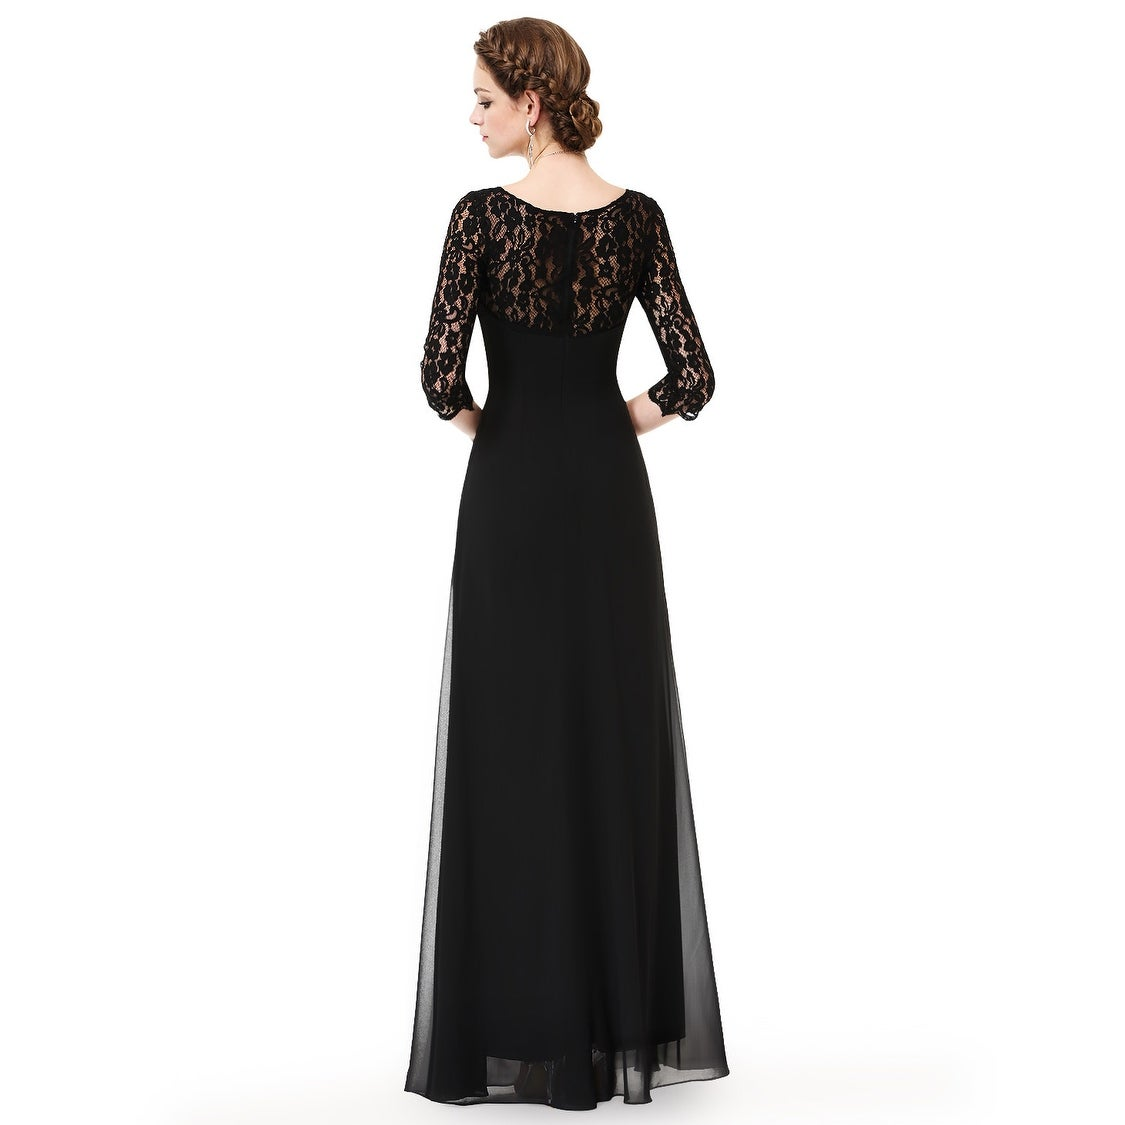 a576ee3f Shop Ever-Pretty Women's Lace Long Sleeve Floor Length Evening Gown 08861 -  On Sale - Free Shipping Today - Overstock - 26063361